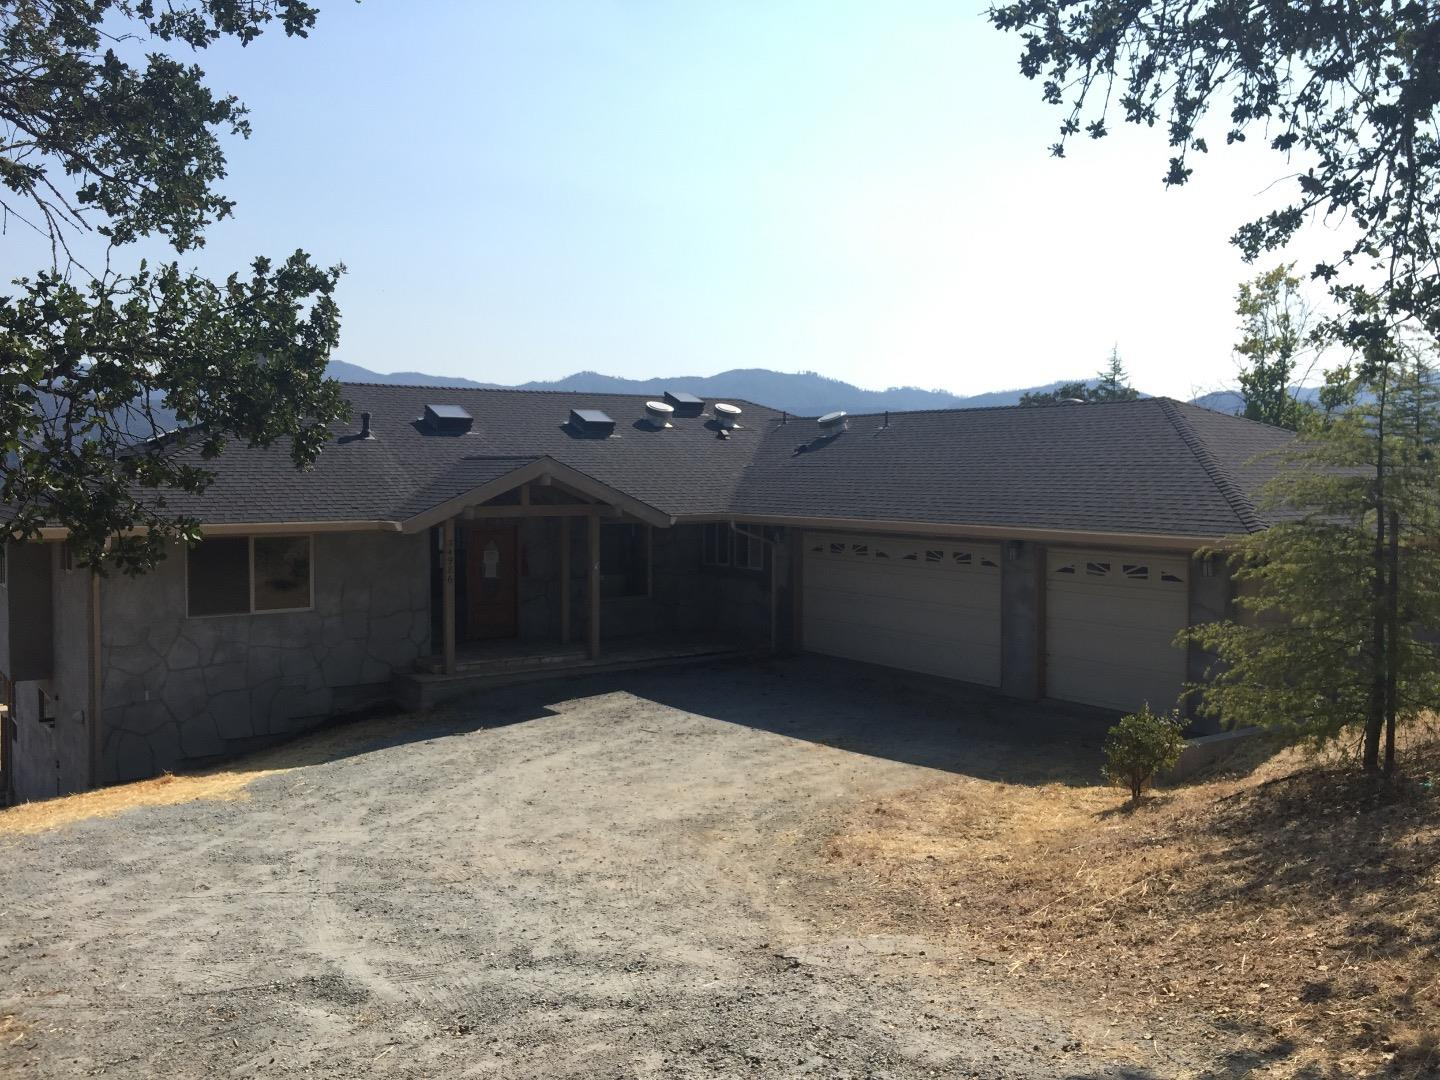 Single Family Home for Sale at 34986 Sky Ranch Road 34986 Sky Ranch Road Carmel Valley, California 93924 United States